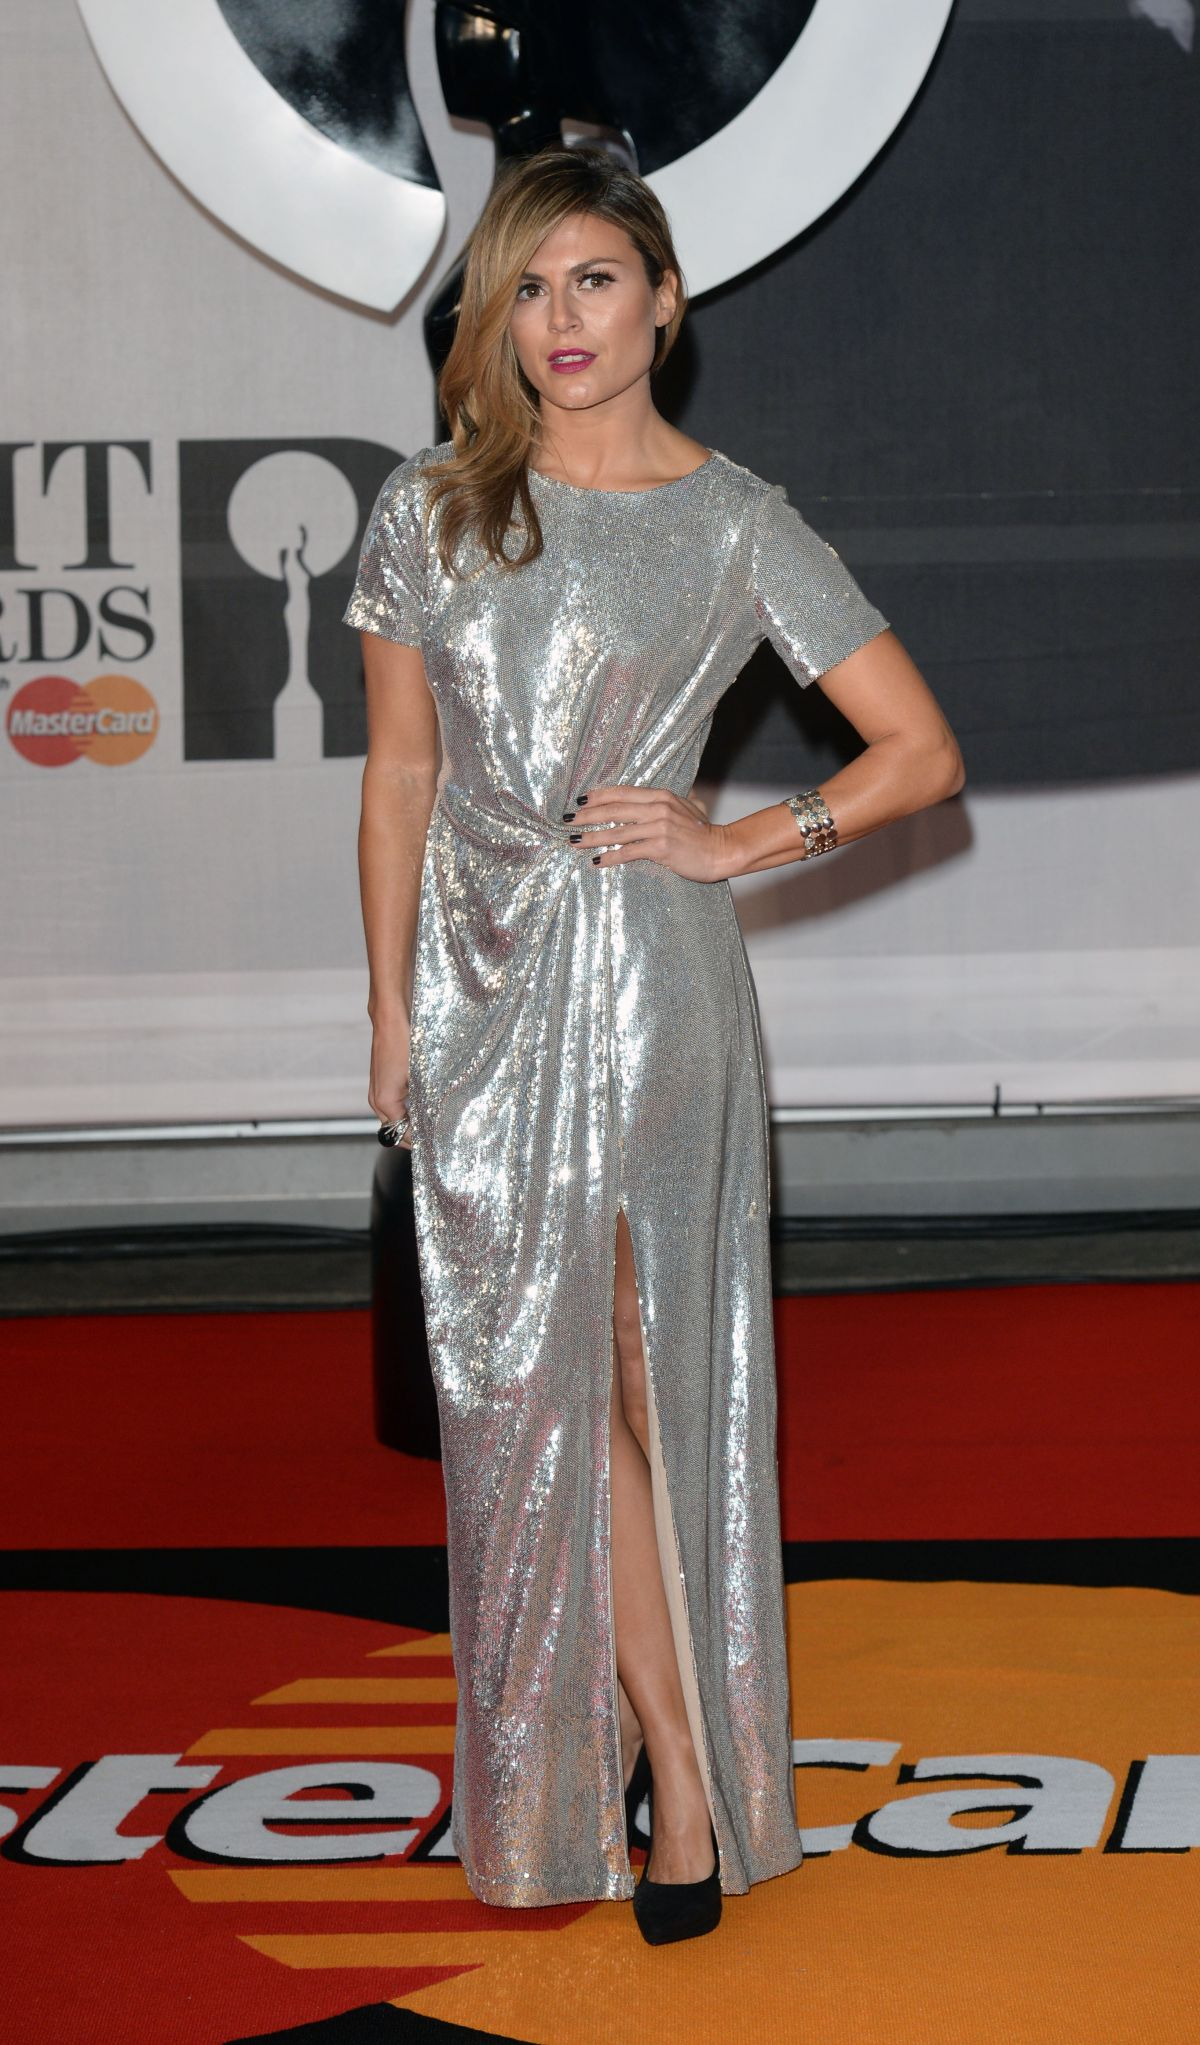 Zoe Hardman At The BRIT Awards 2014 At The 02 Arena In London